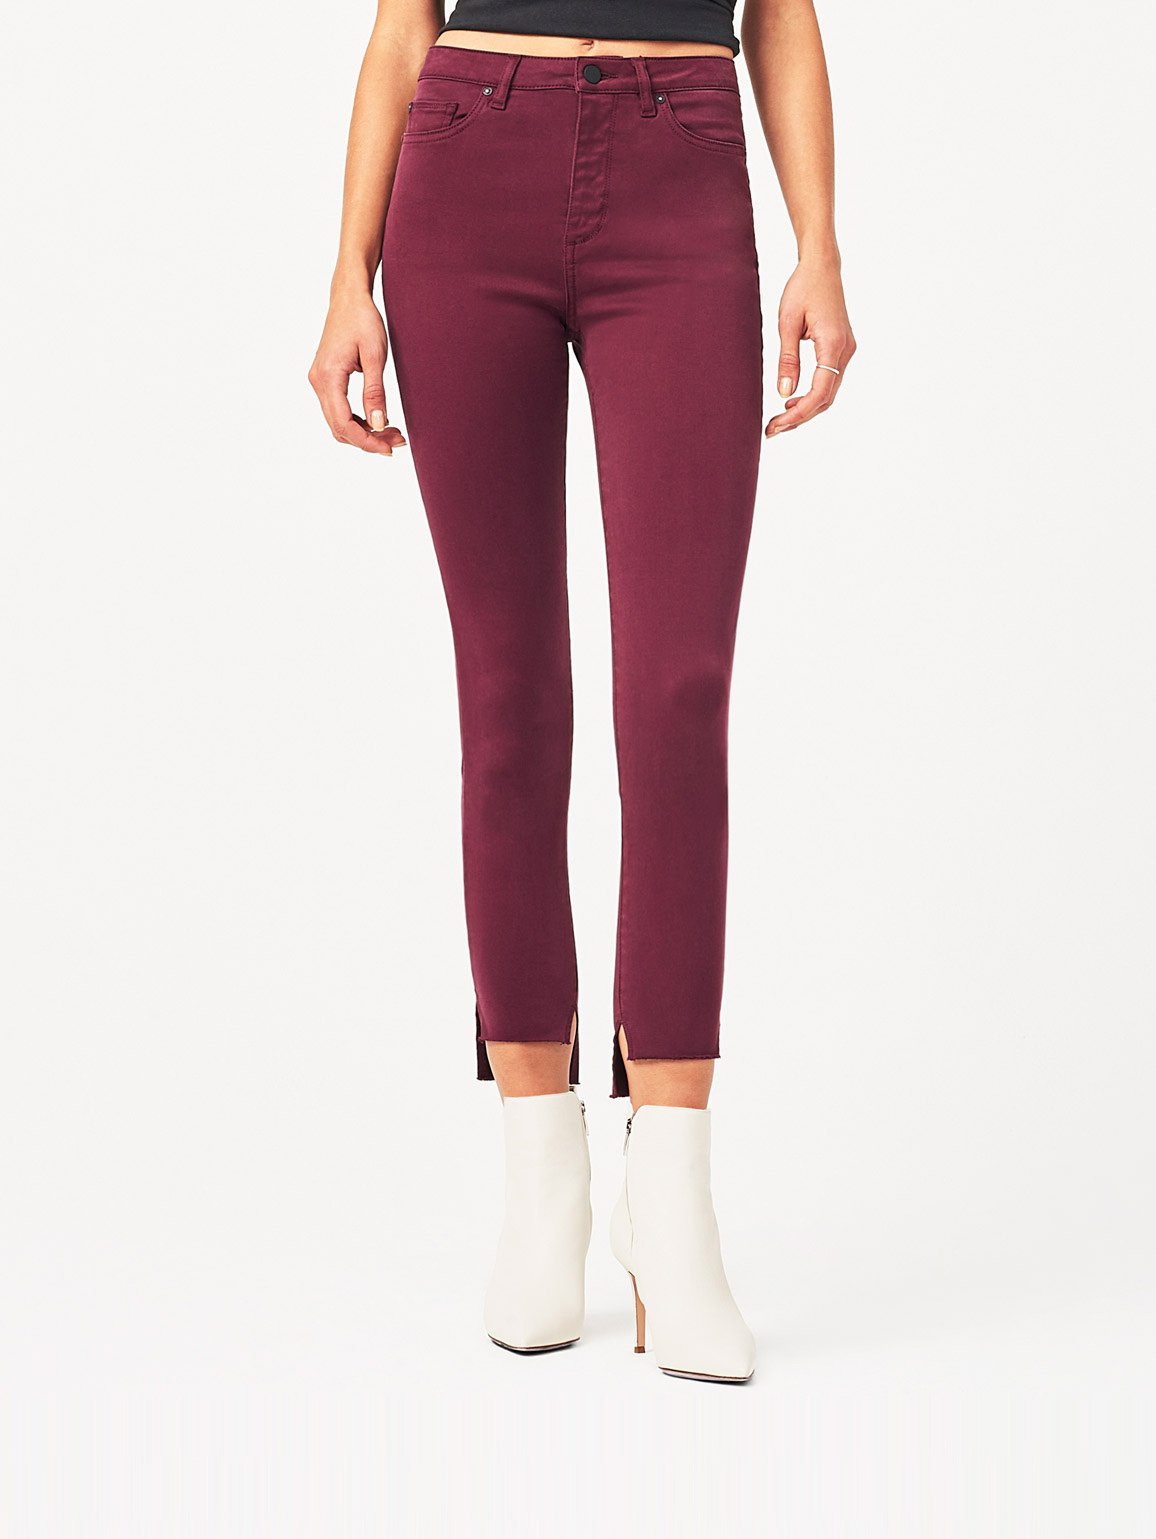 Image of Chrissy Ultra High Rise Skinny / Rouge Noir